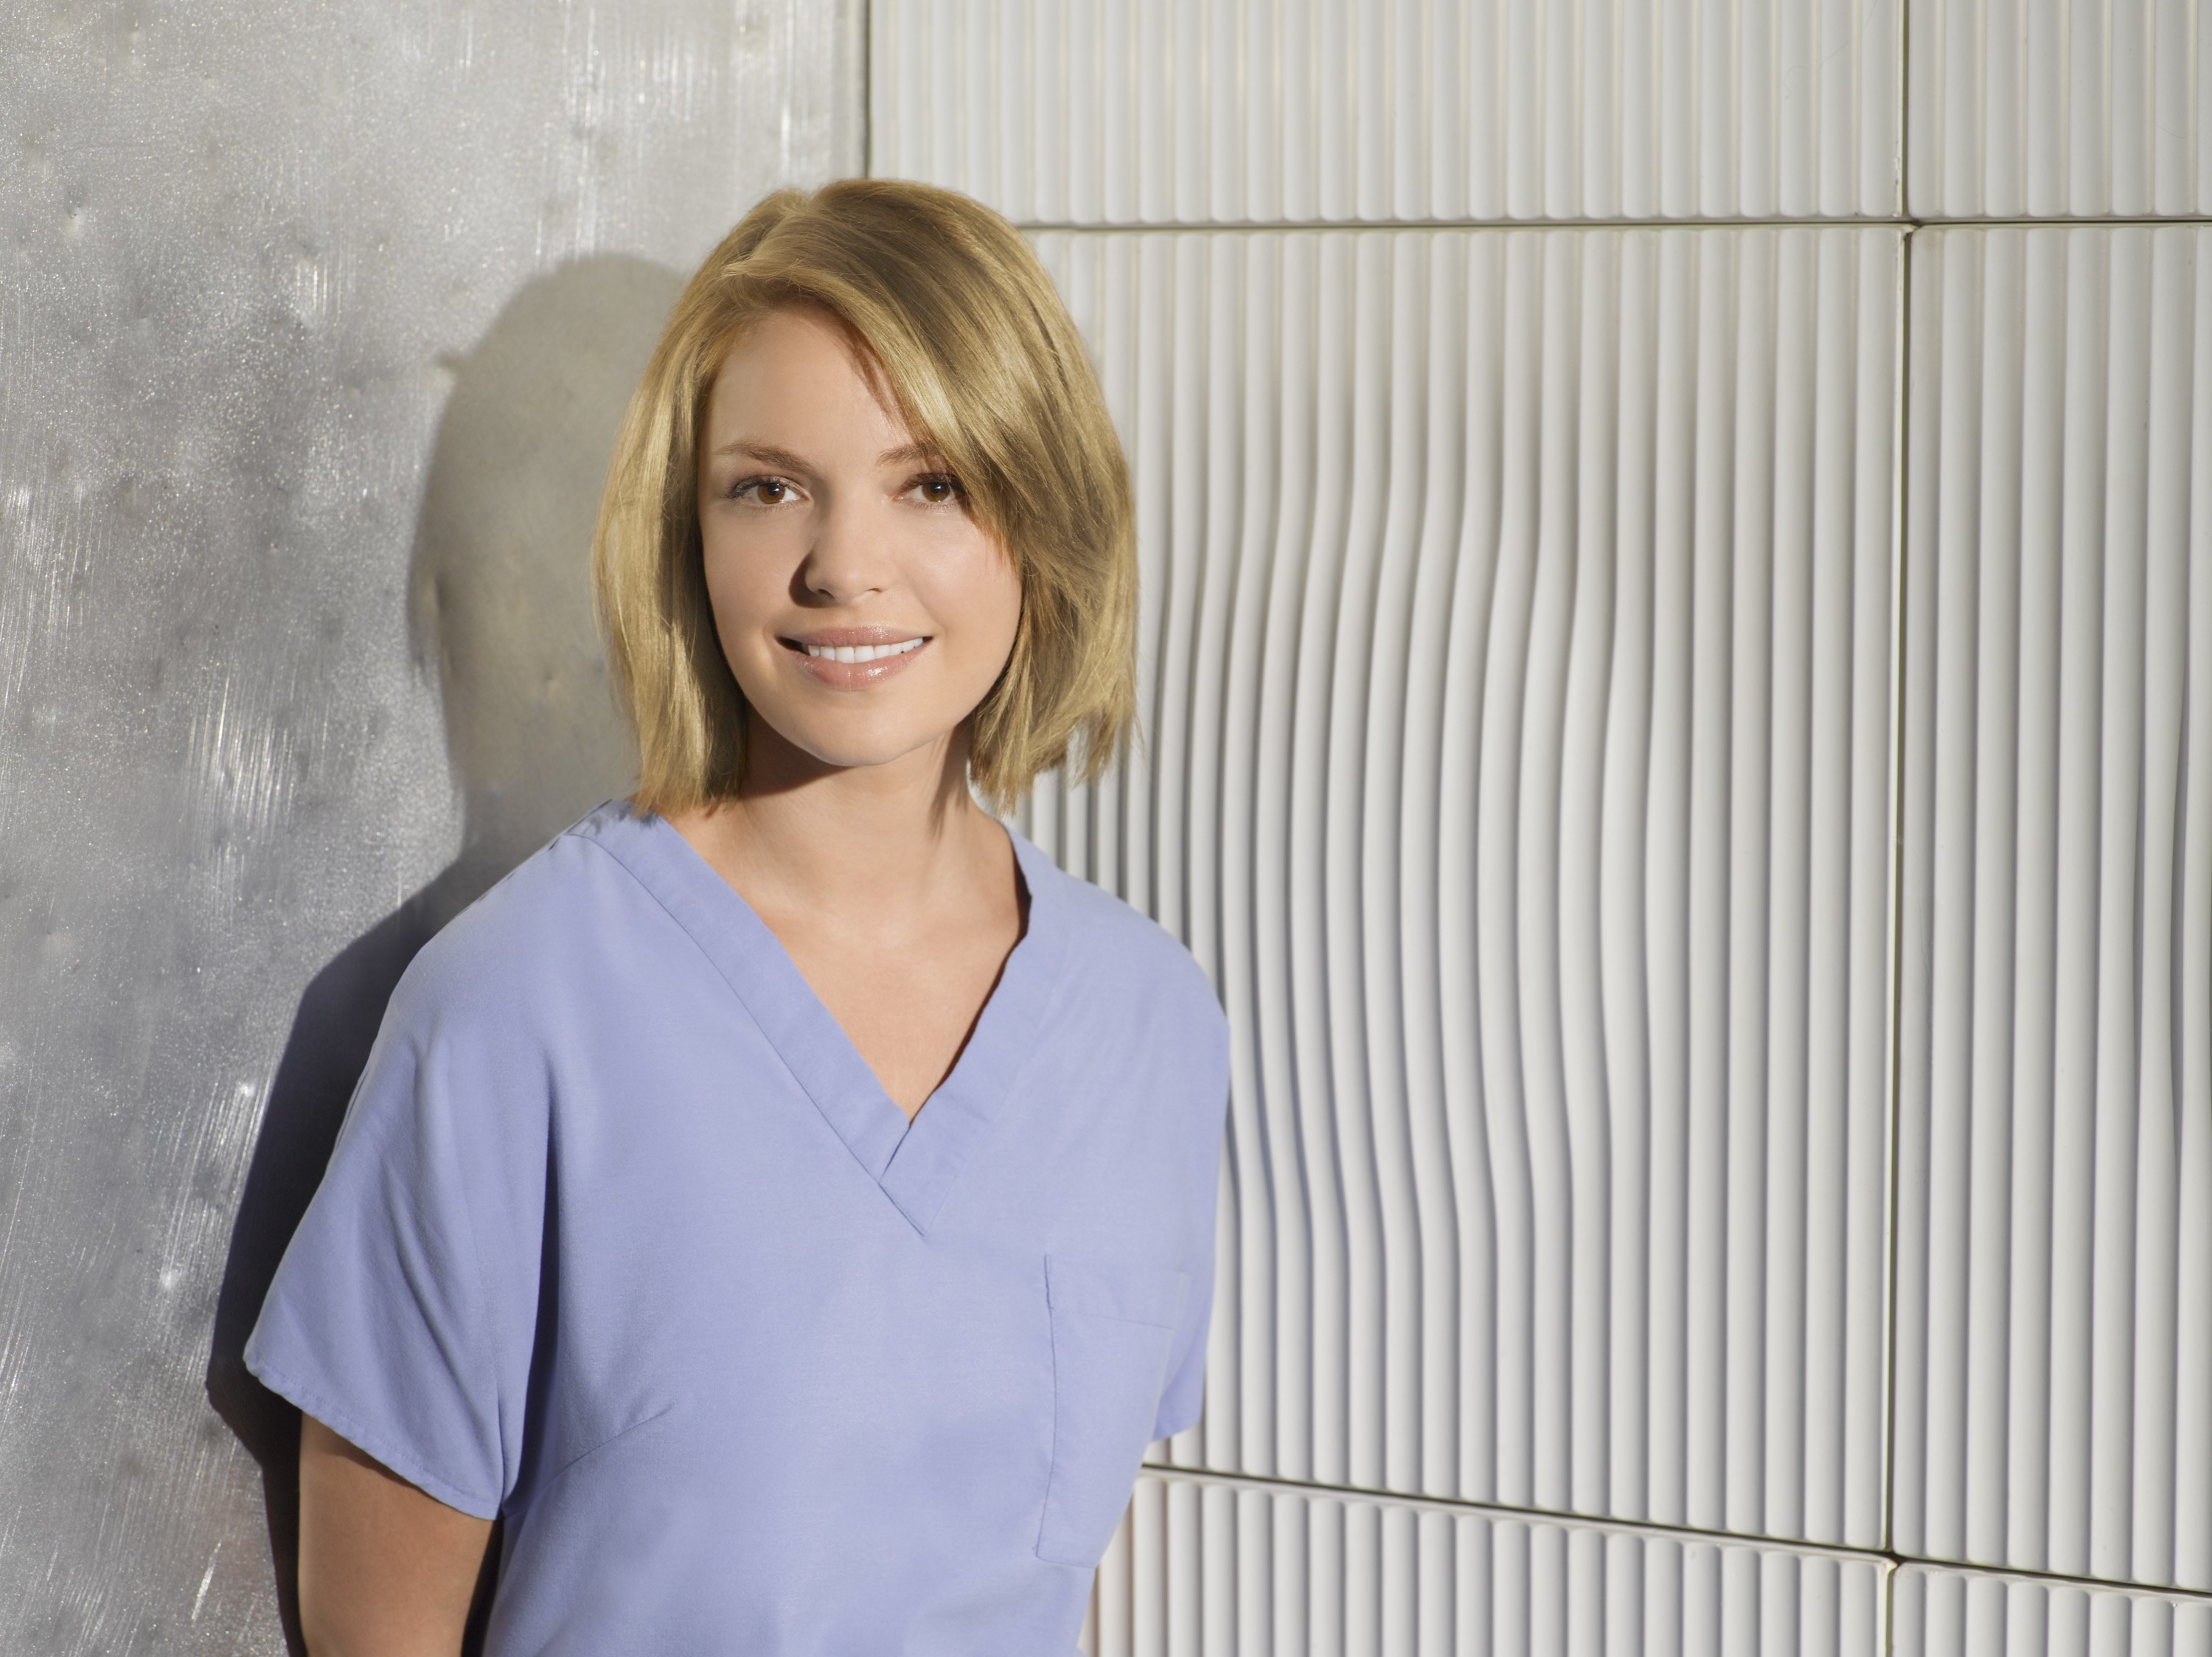 Katherine Heigl wearing blue scrubs in a promotional photo for Grey's Anatomy